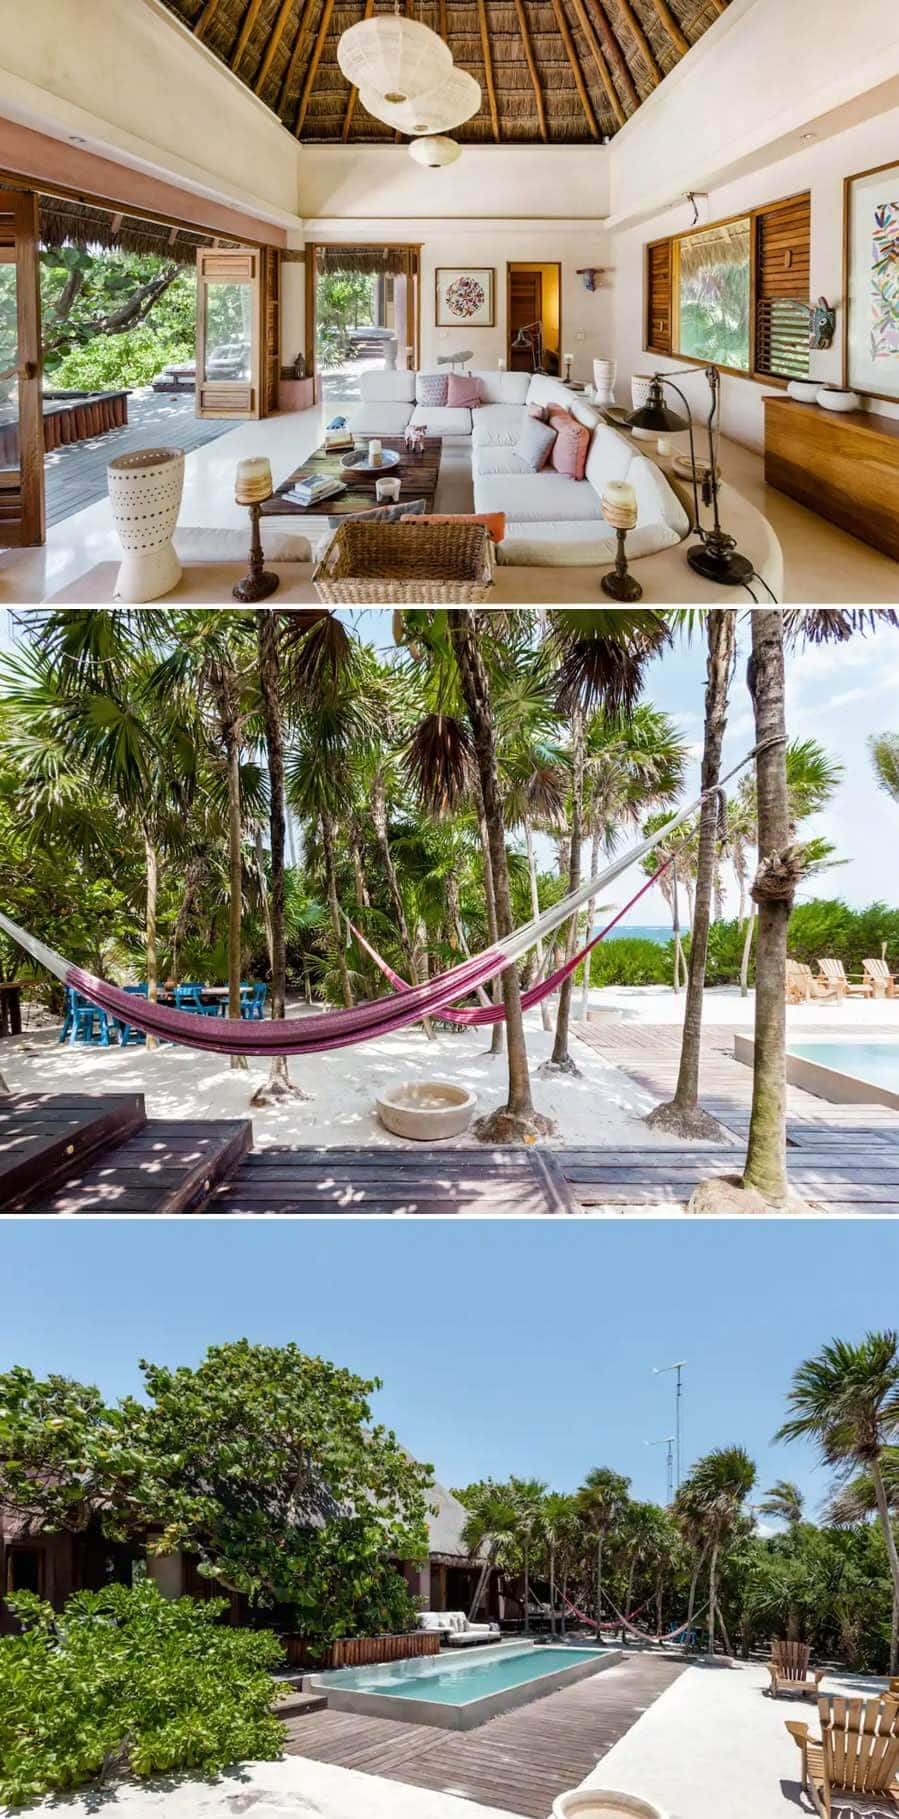 Best Airbnbs in Tulum - Luxury villa with hammocks and pool